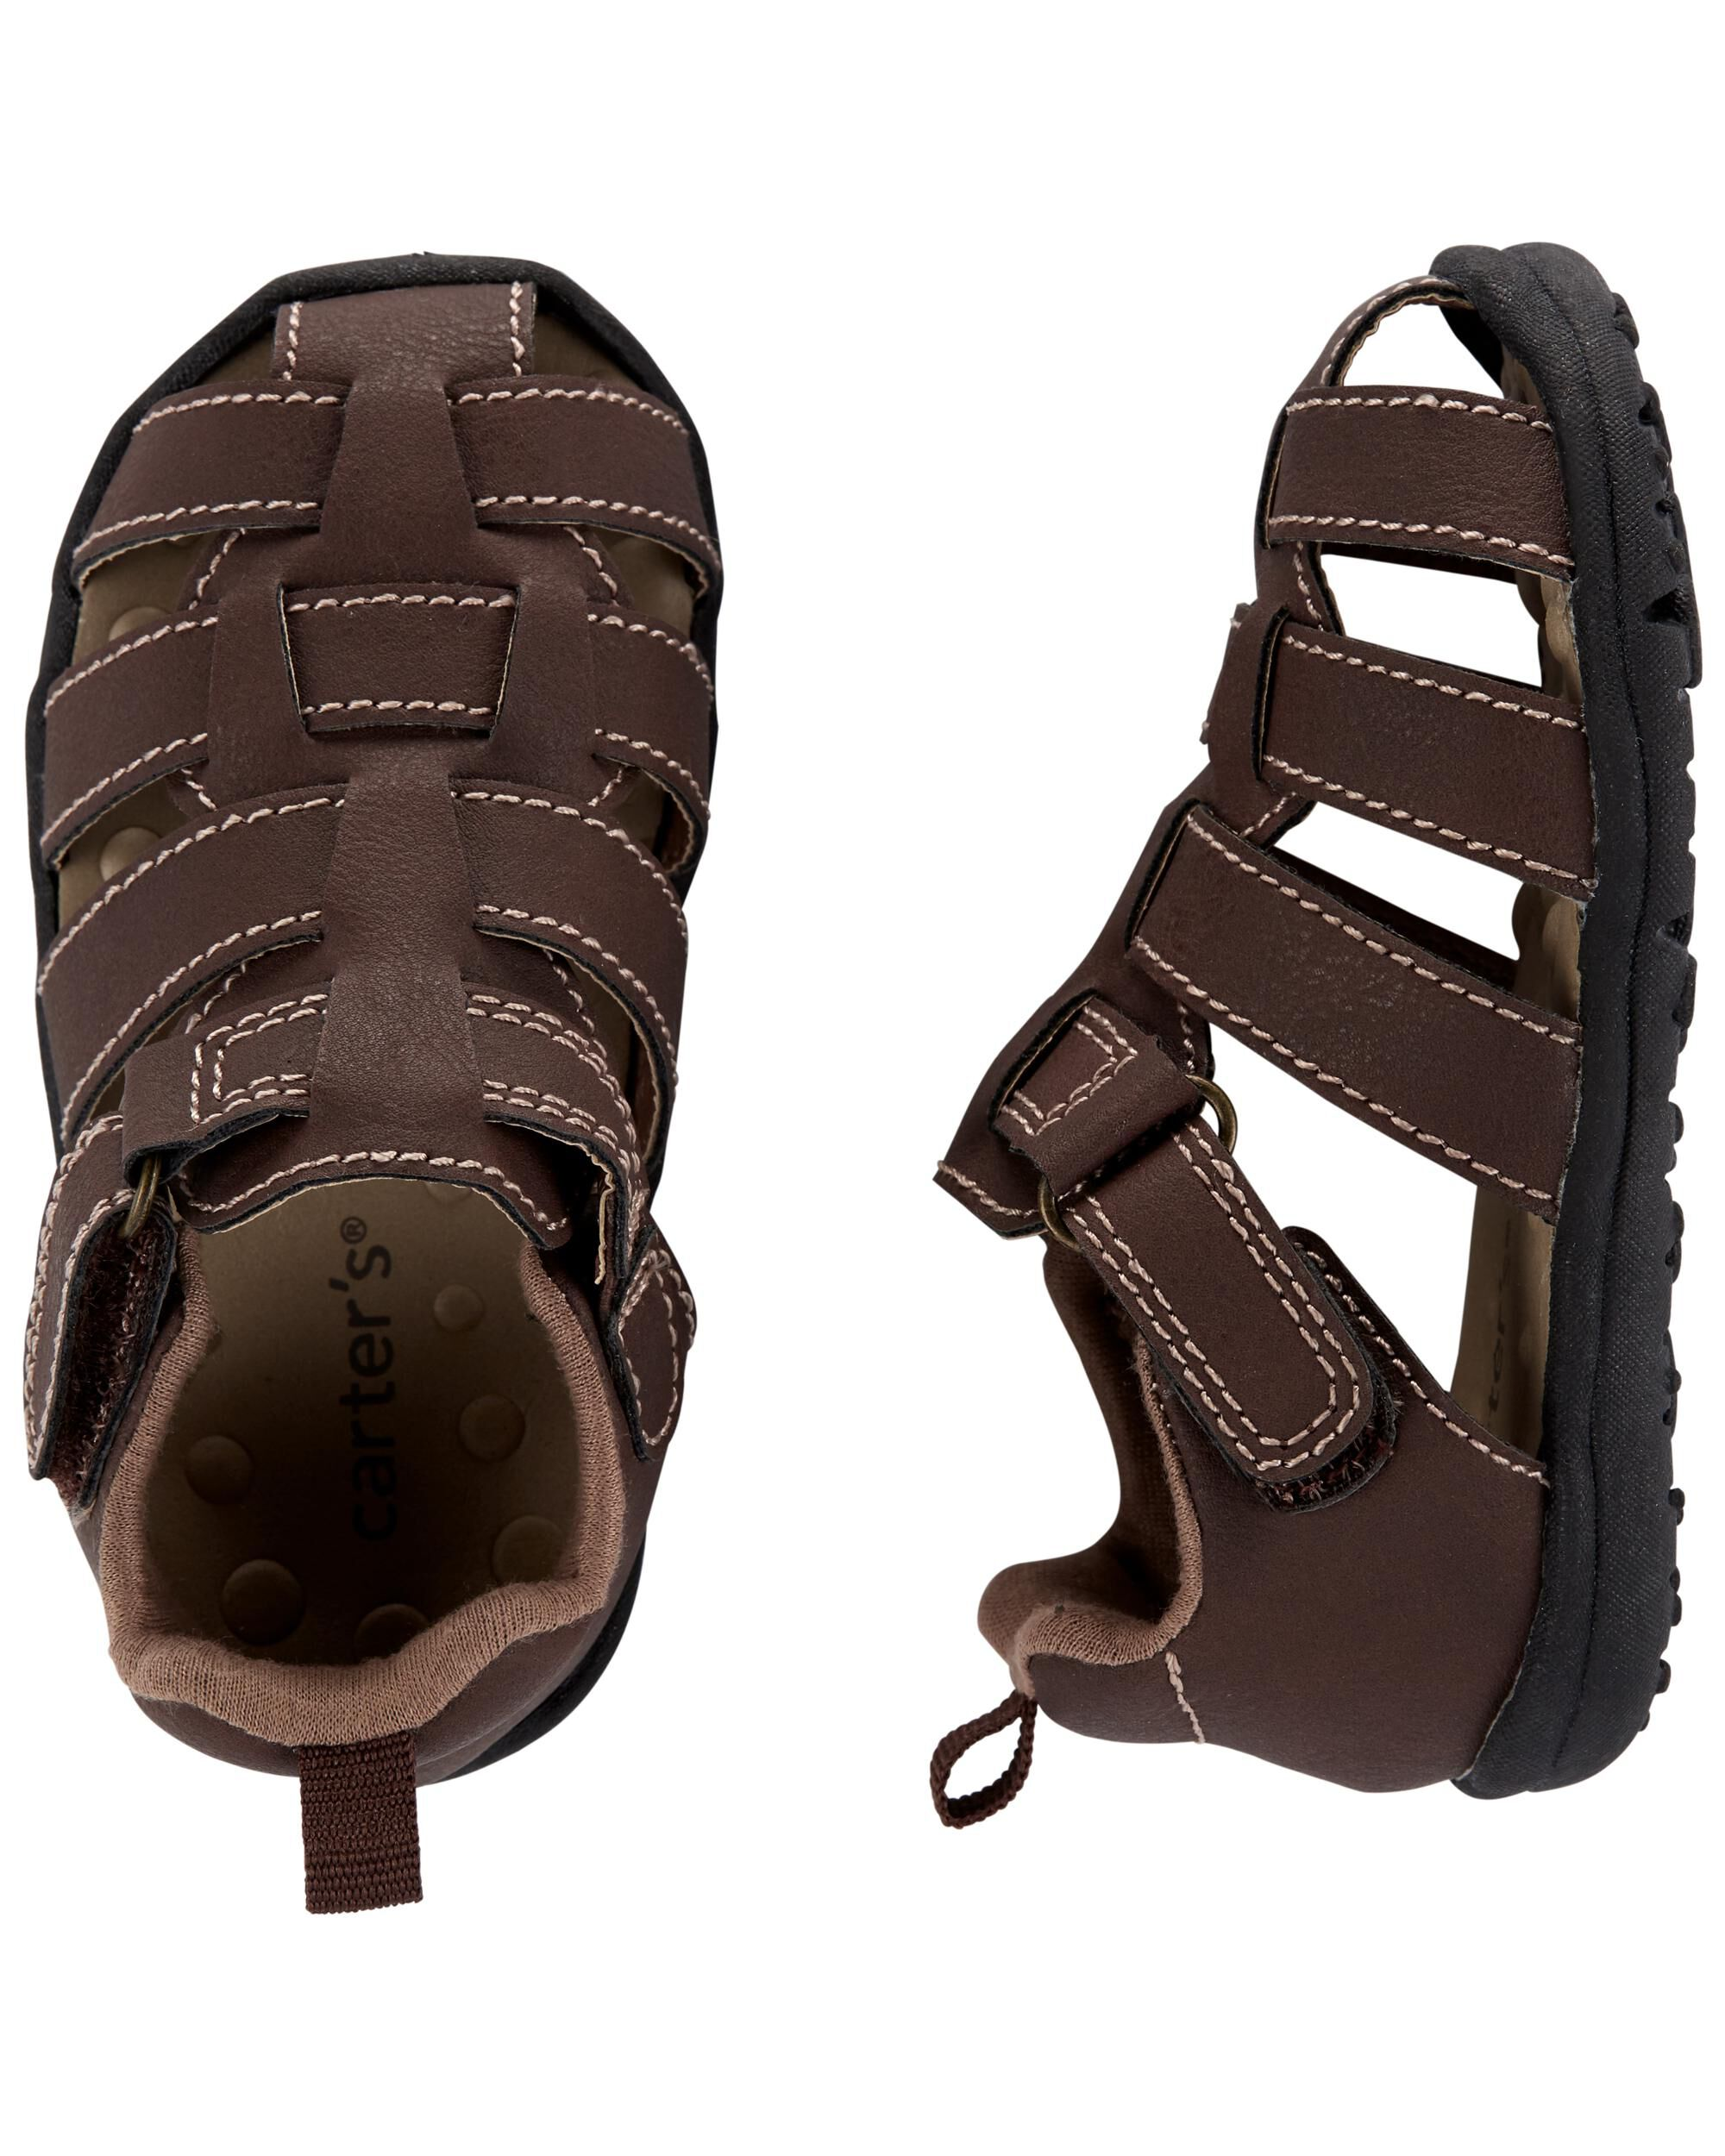 Carters Every Step Fisherman Sandals